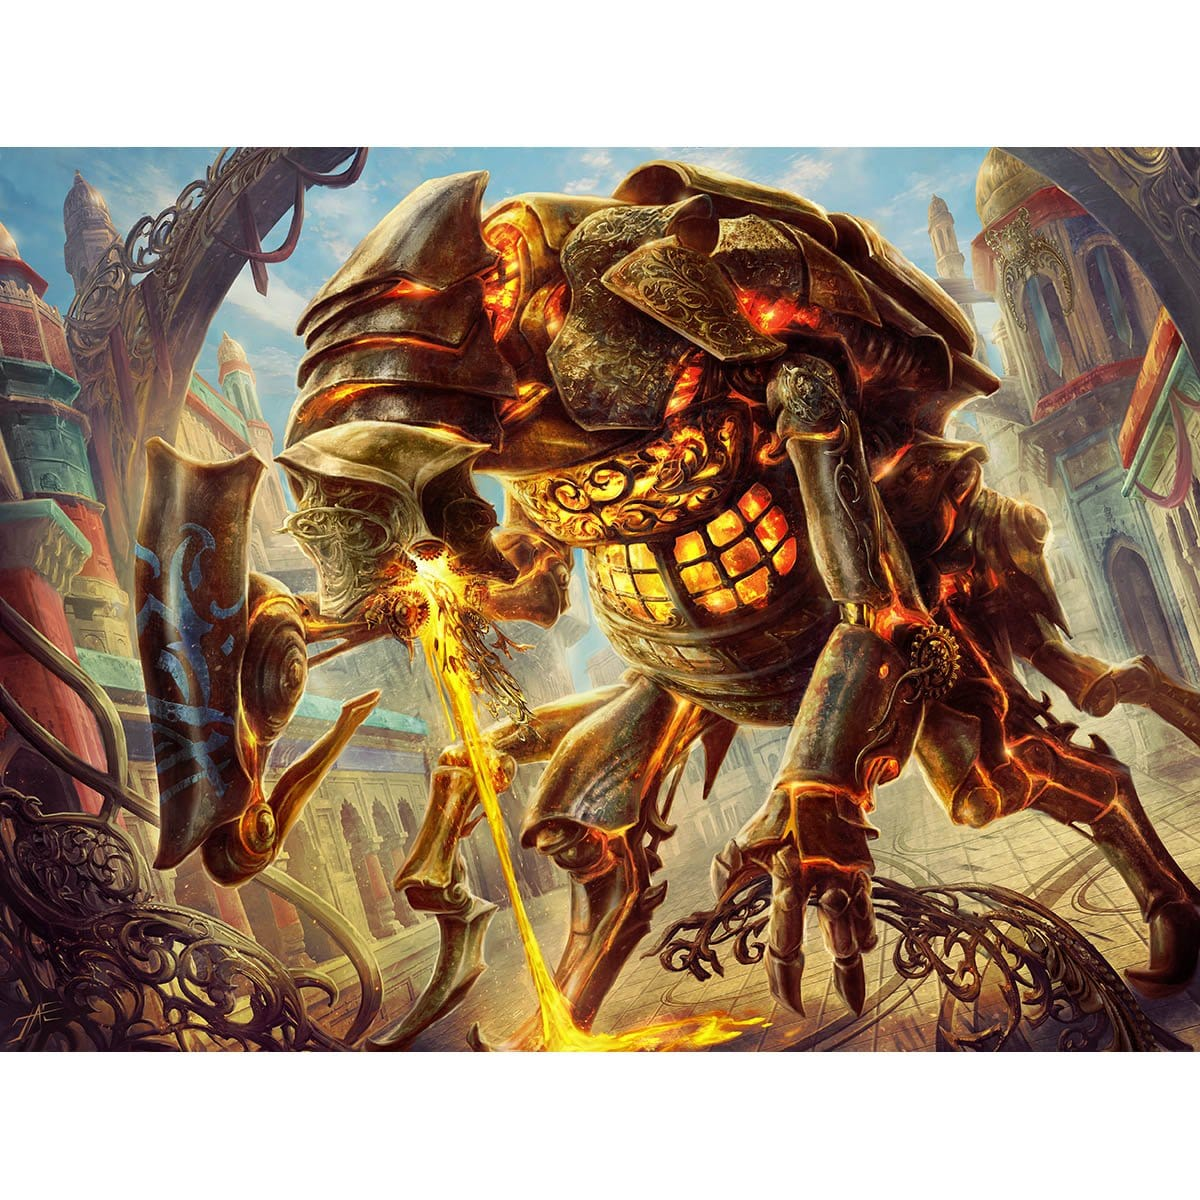 Scrapheap Scrounger Print - Print - Original Magic Art - Accessories for Magic the Gathering and other card games